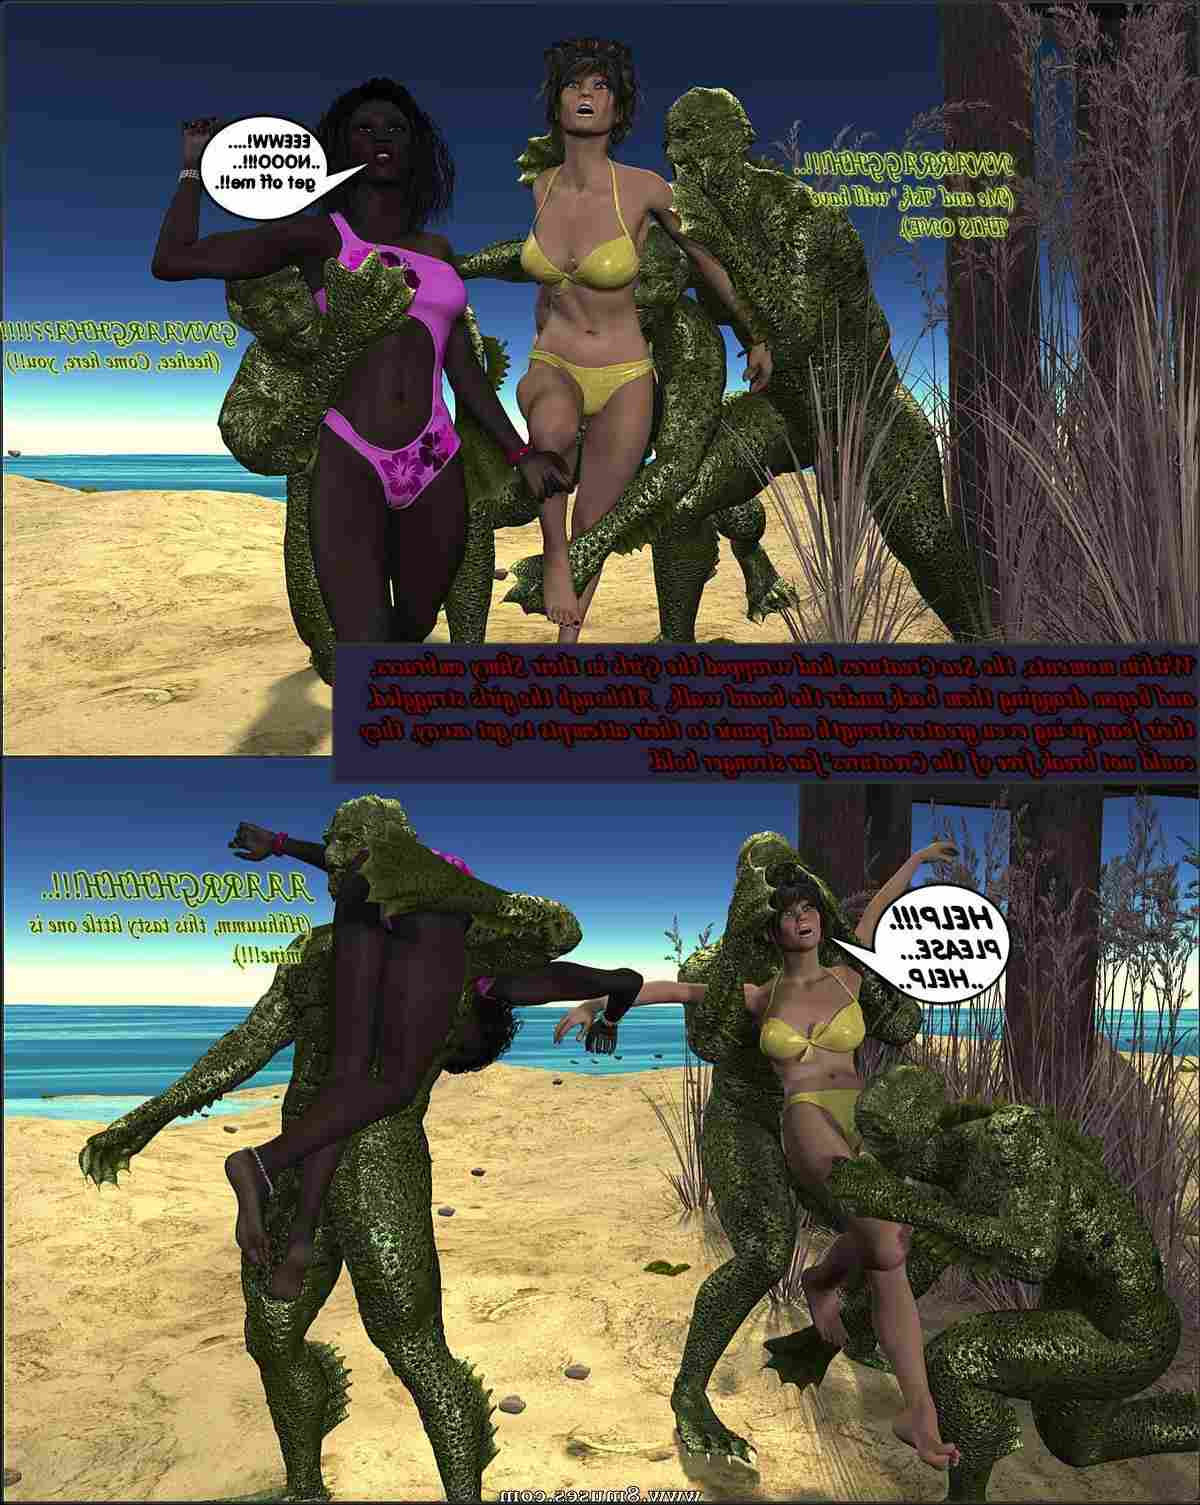 DarkSoul3D-Comics/Monstrous-Tales-Return-To-The-Boardwalk Monstrous_Tales_-_Return_To_The_Boardwalk__8muses_-_Sex_and_Porn_Comics_26.jpg